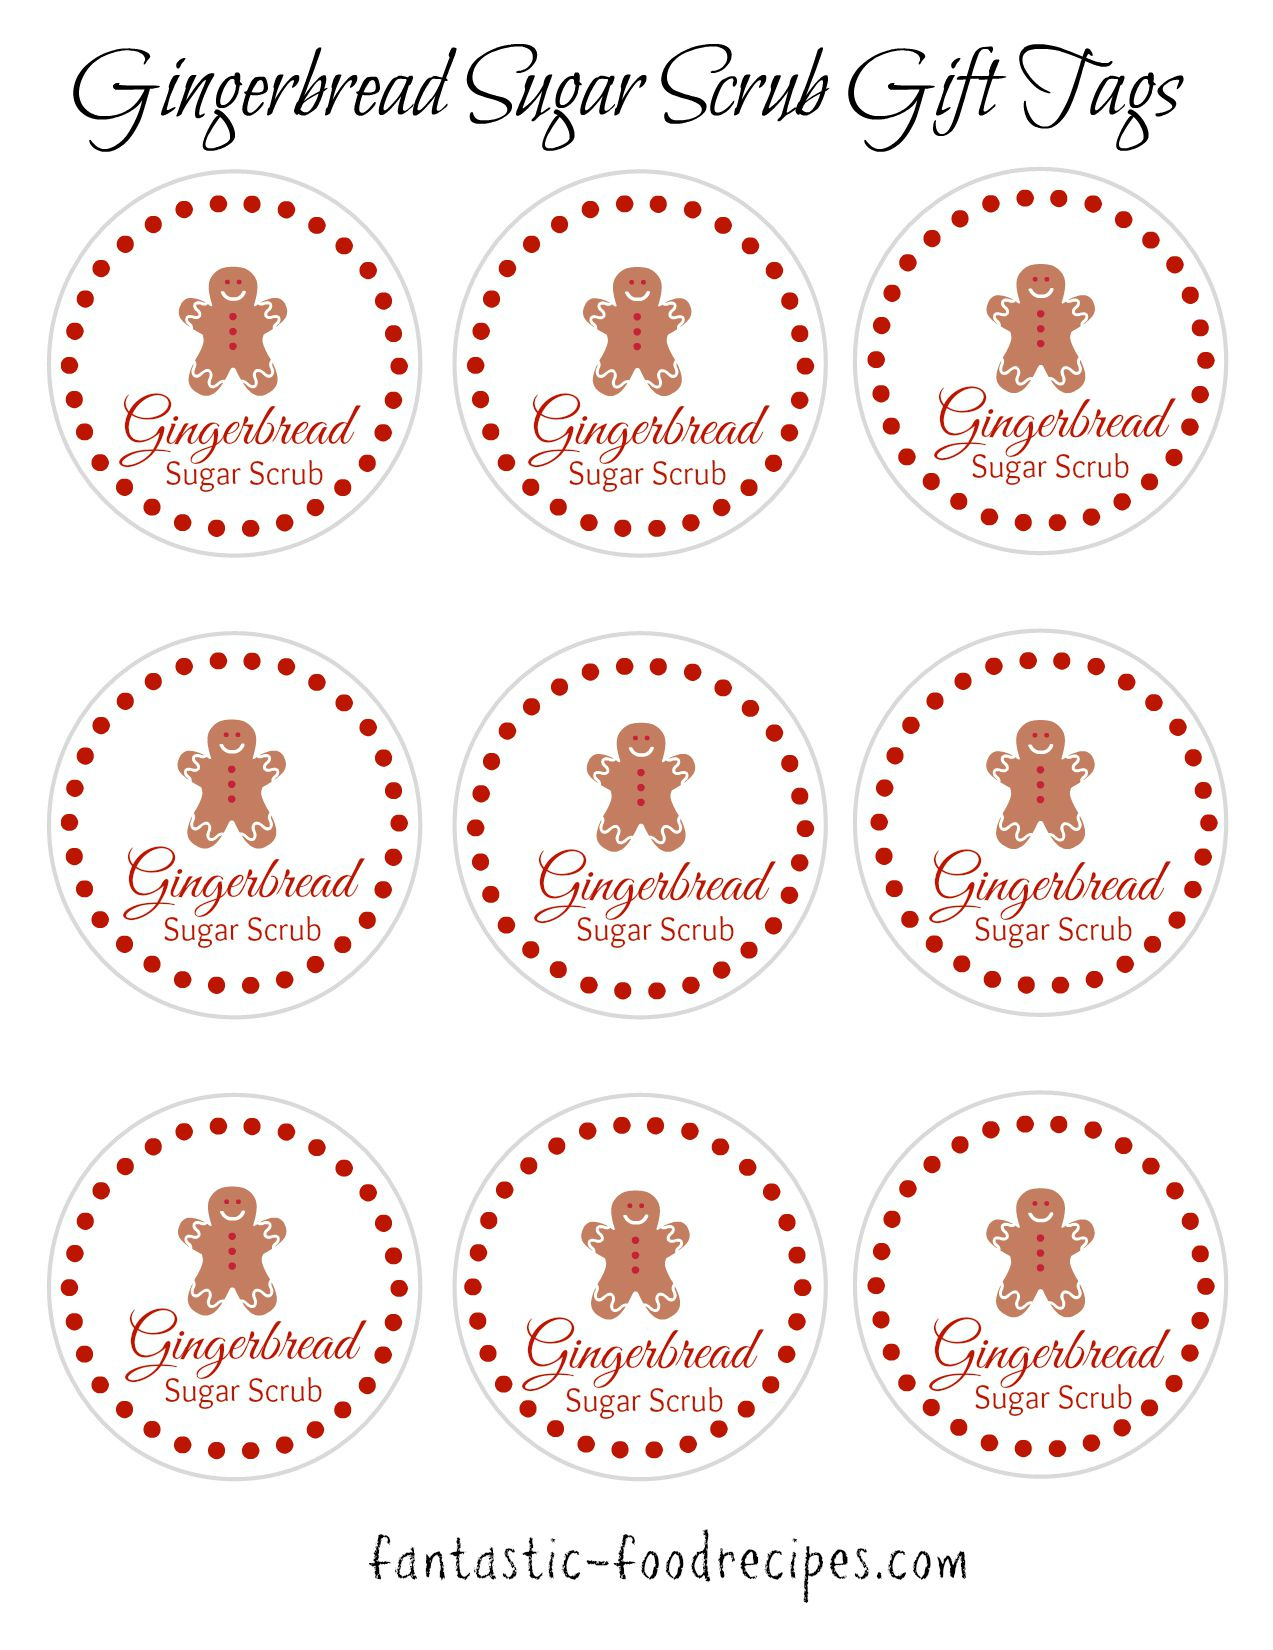 Here is the same Gingerbread Sugar Scrub Free Printable in pdf format.